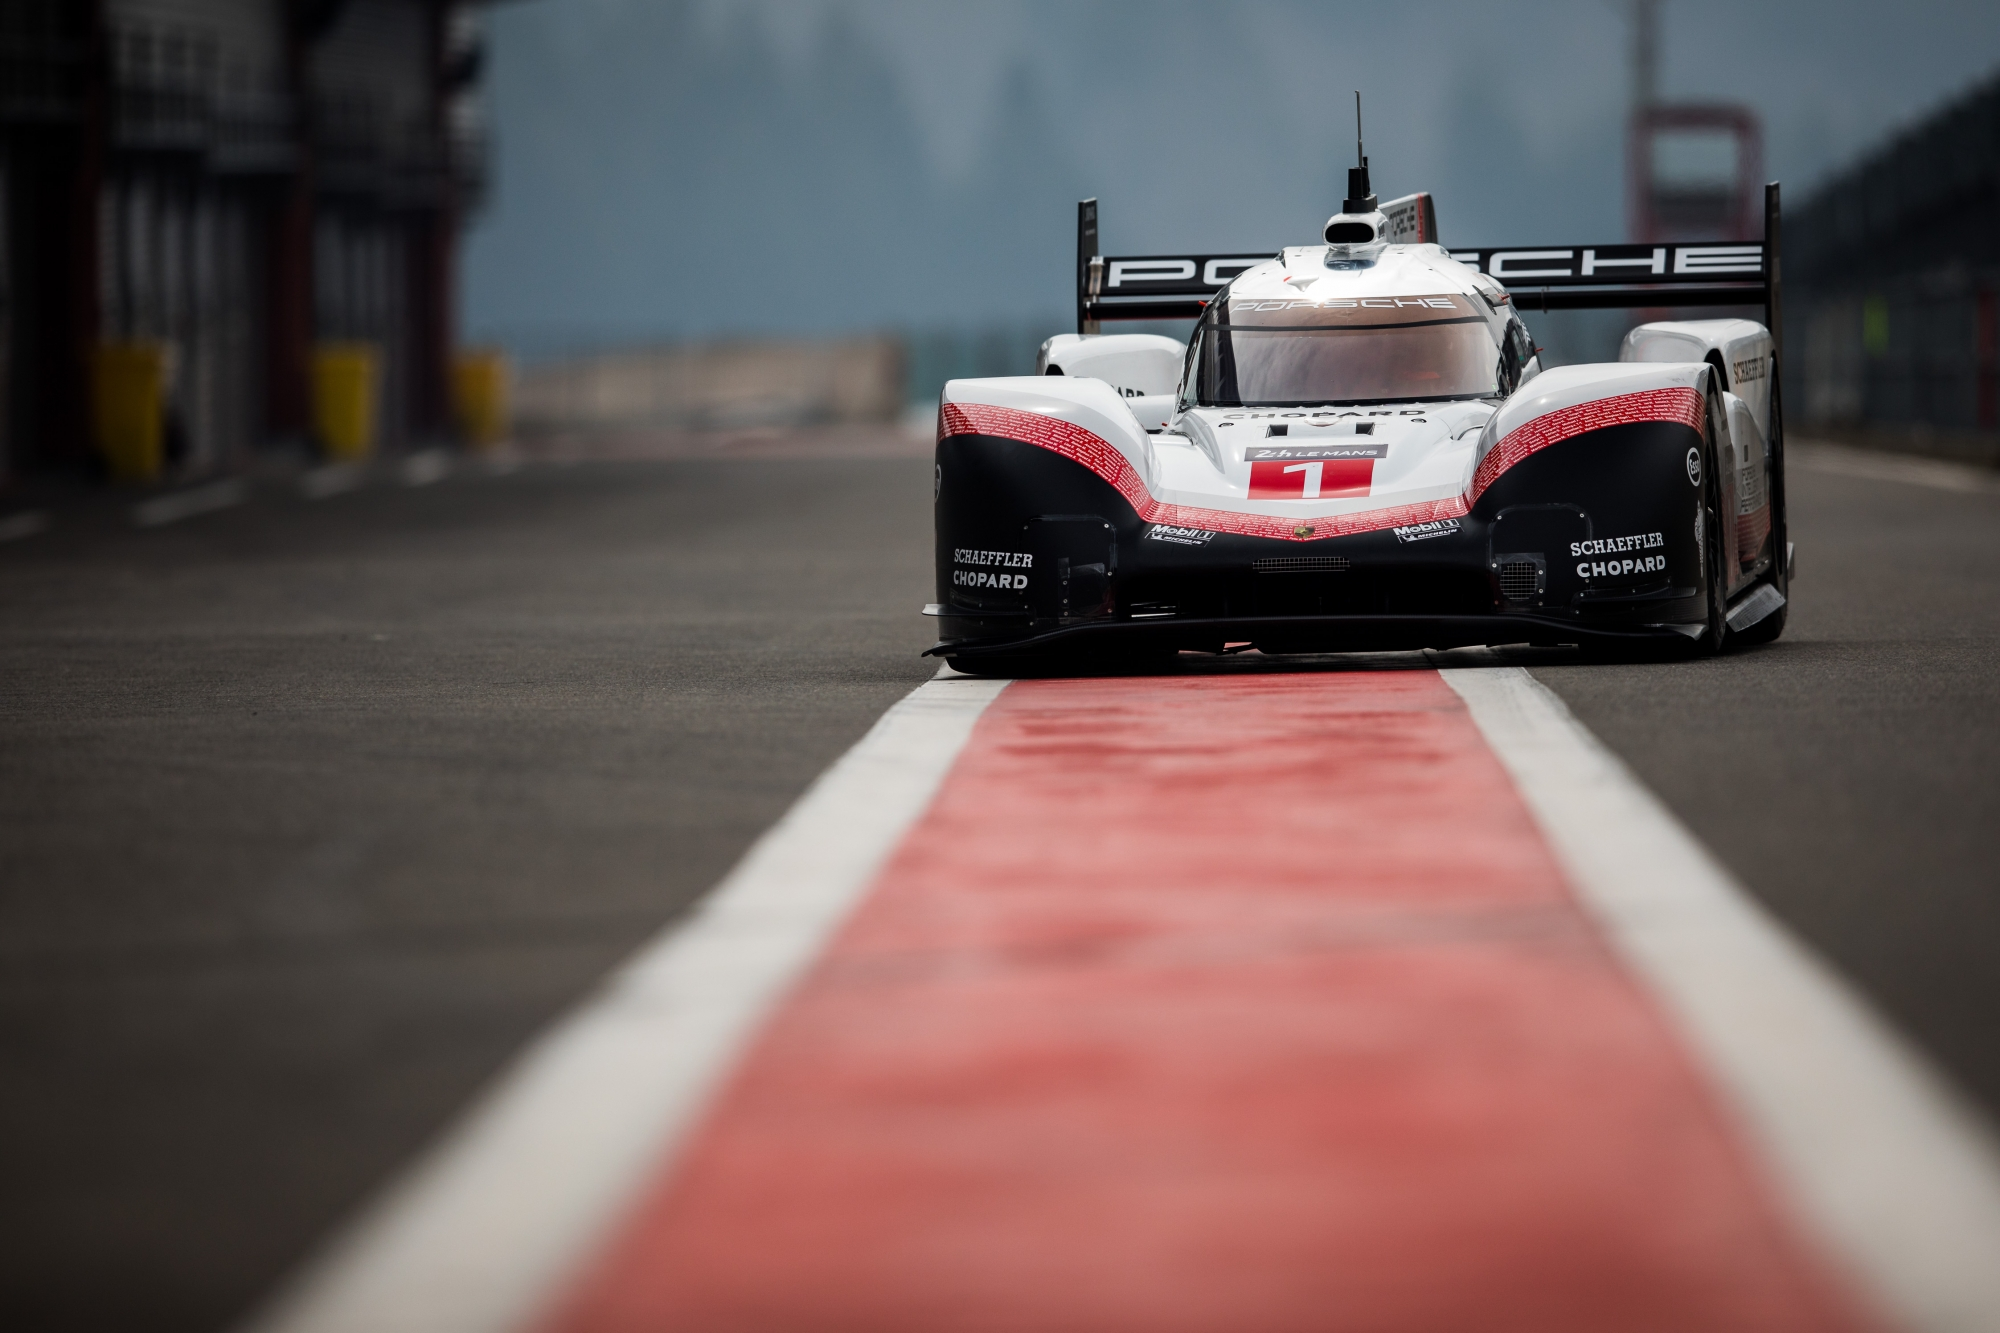 image 1 - The Porsche 919 Hybrid Evo demonstrates at the 25 Hours VW Fun Cup!